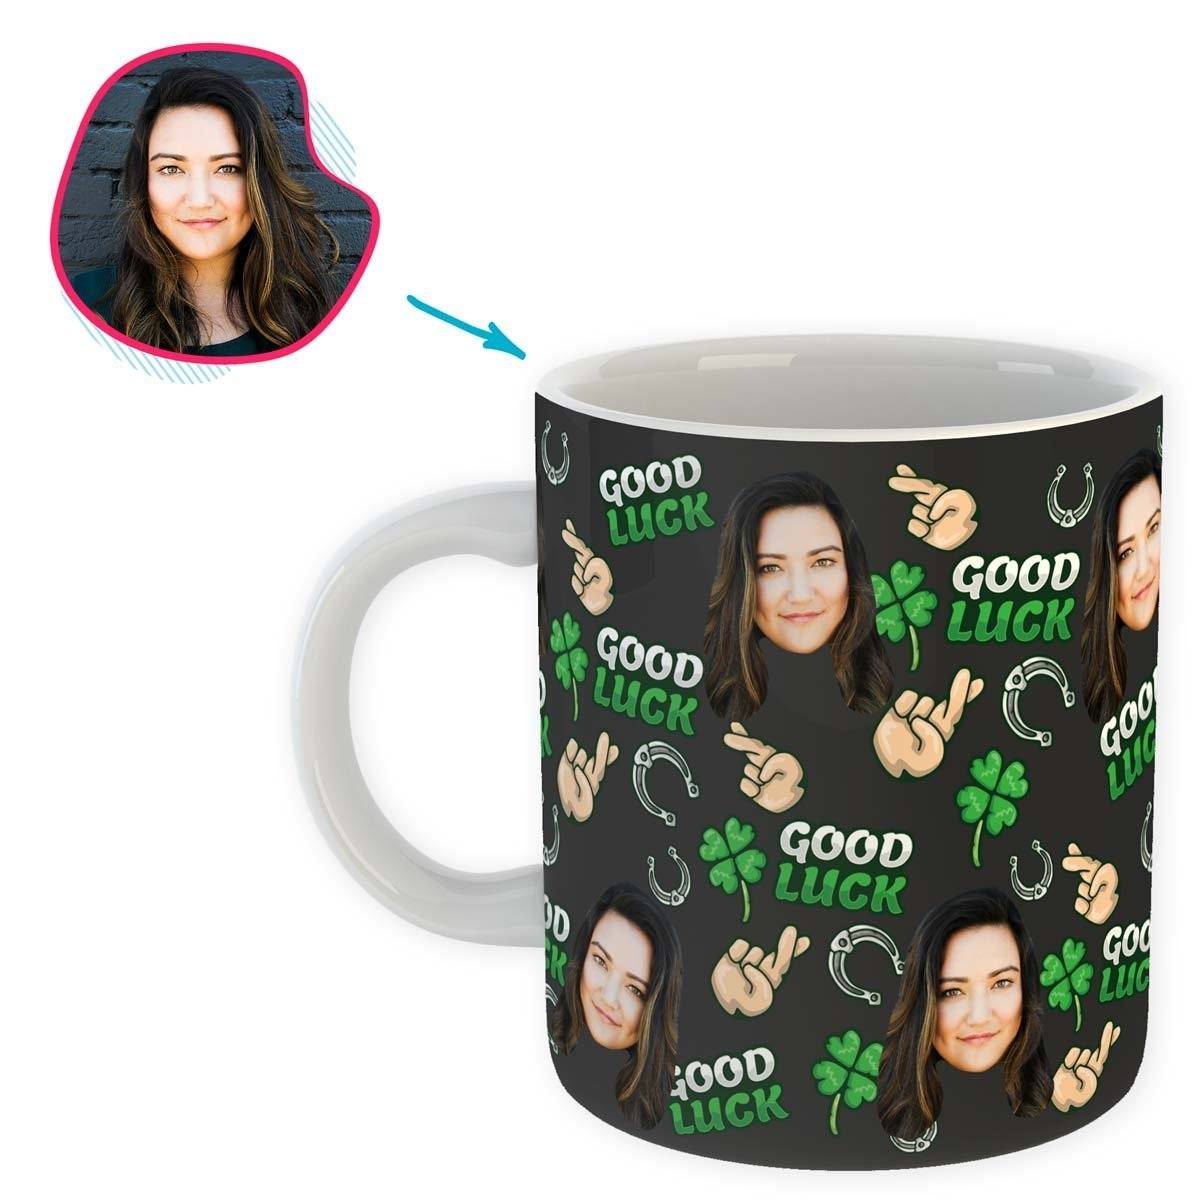 Dark Good Luck personalized mug with photo of face printed on it